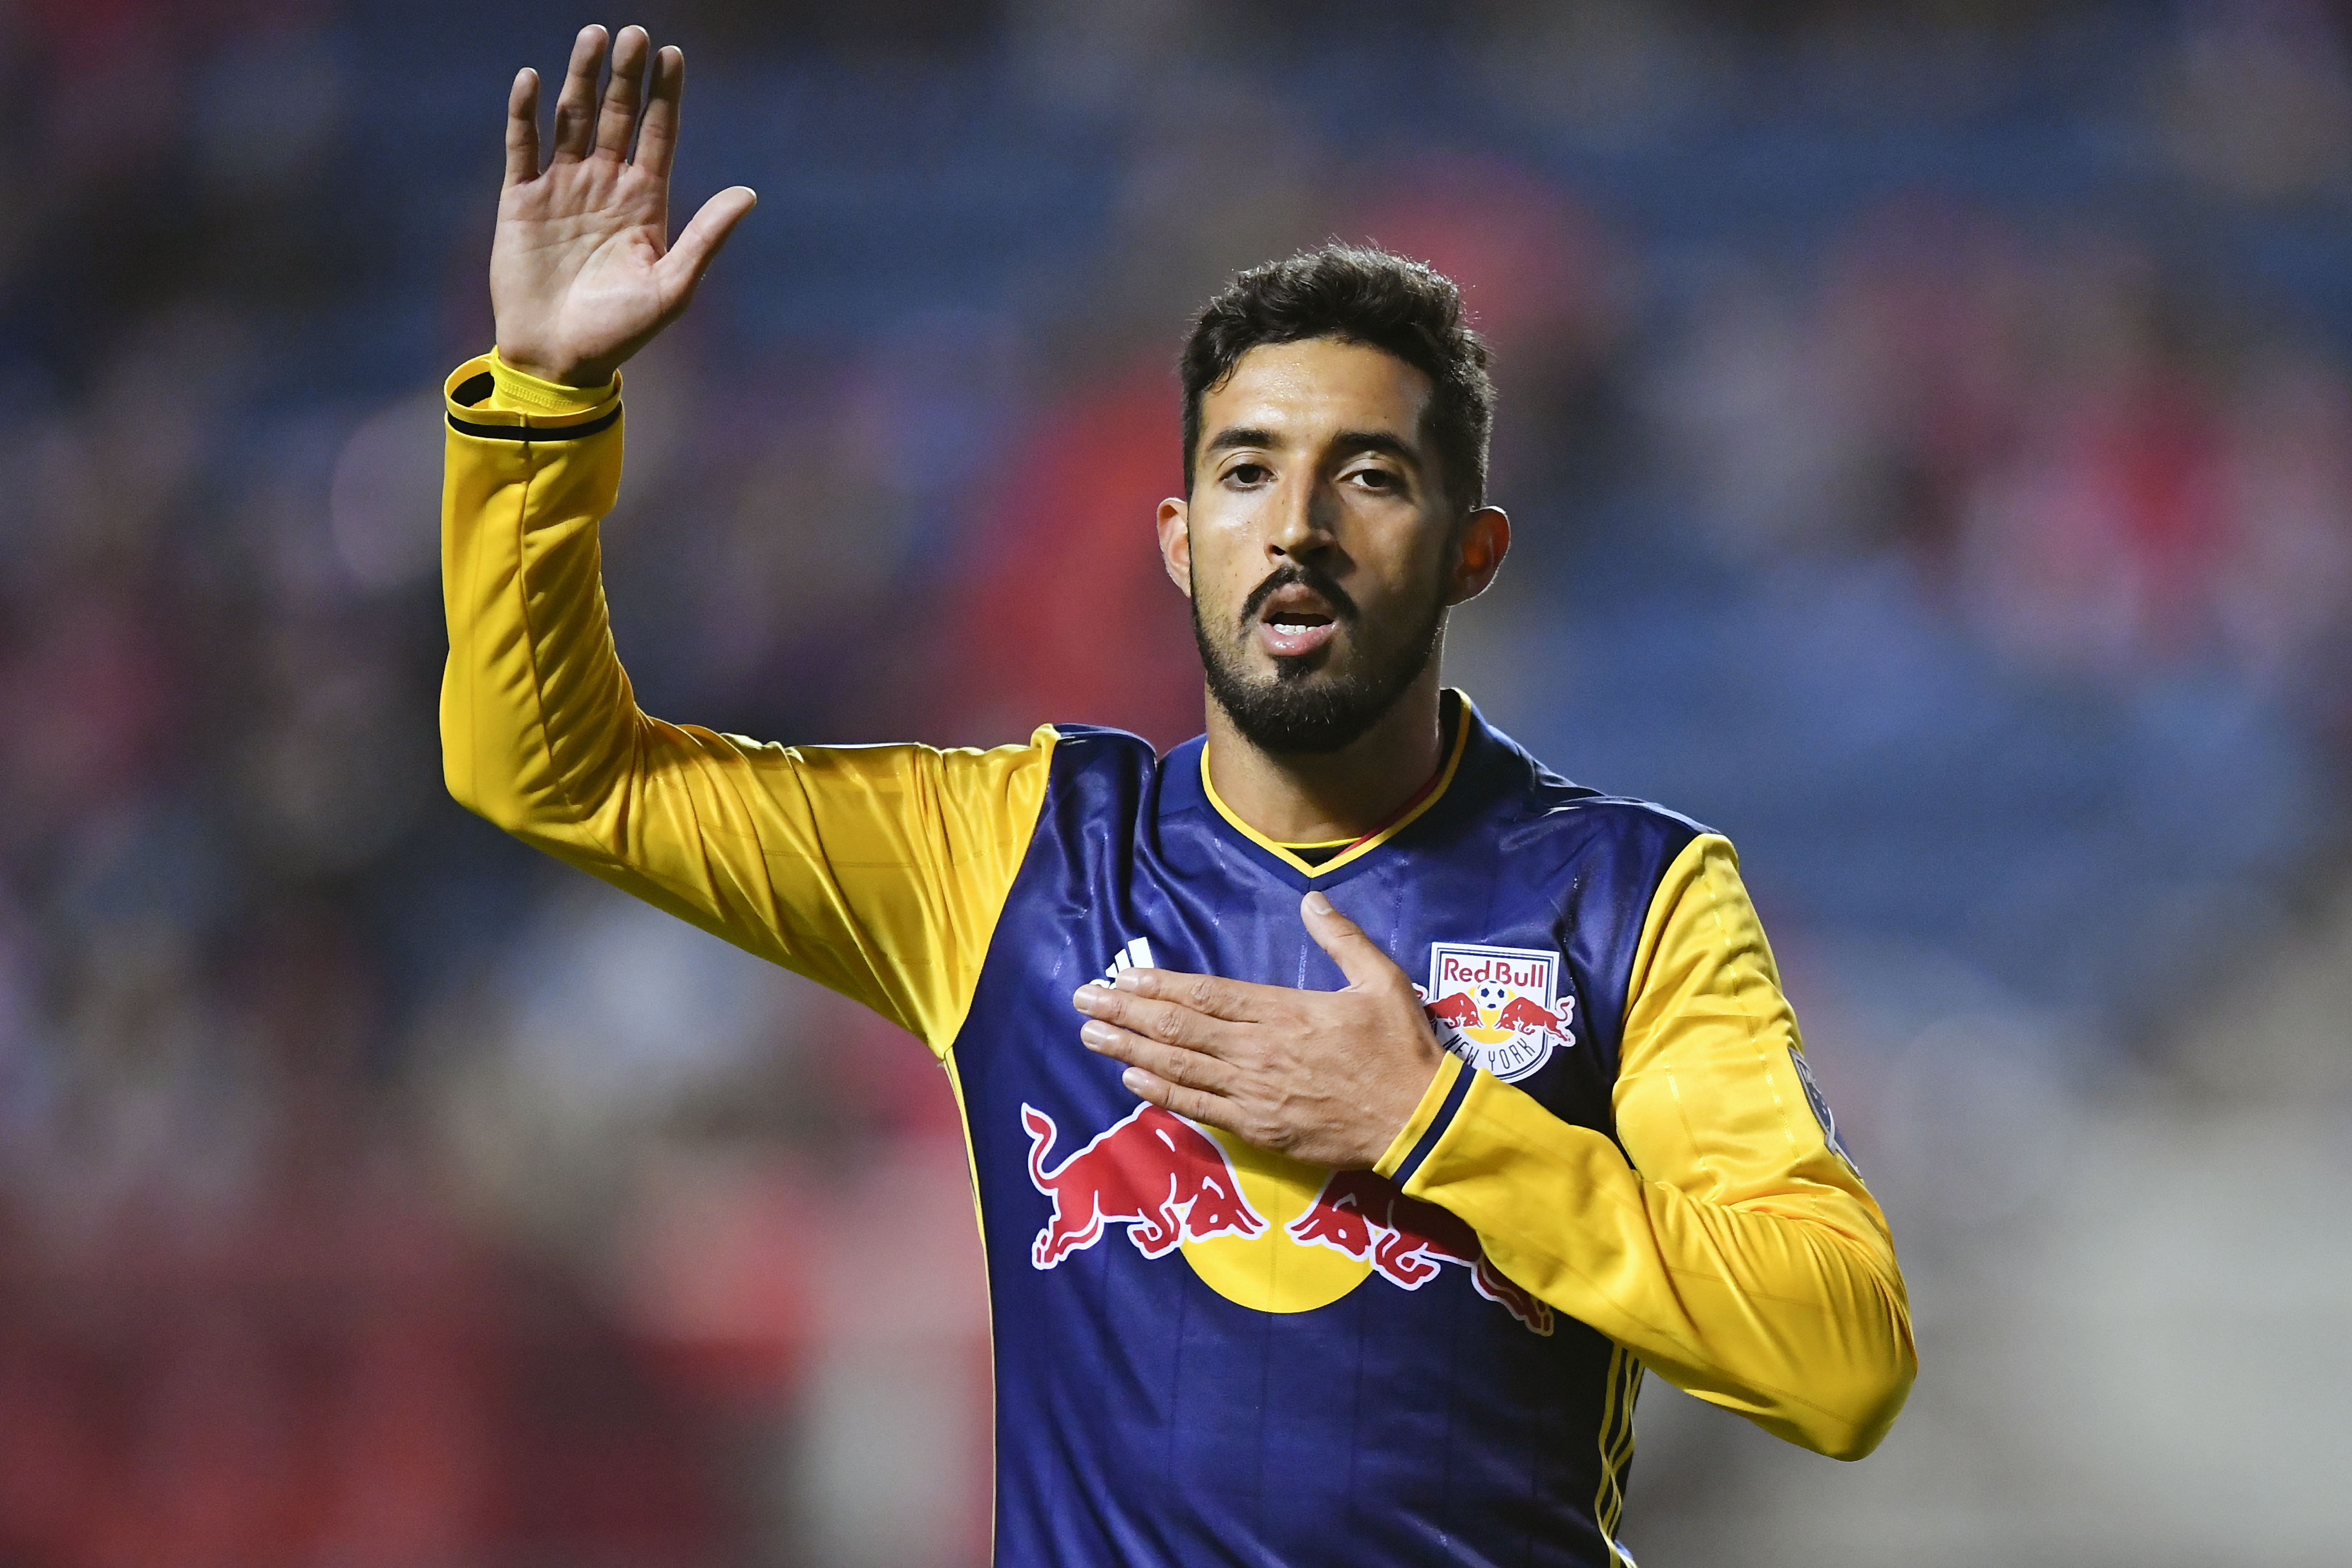 SOCCER: OCT 25 MLS Cup Playoffs - NY Red Bulls at Chicago Fire